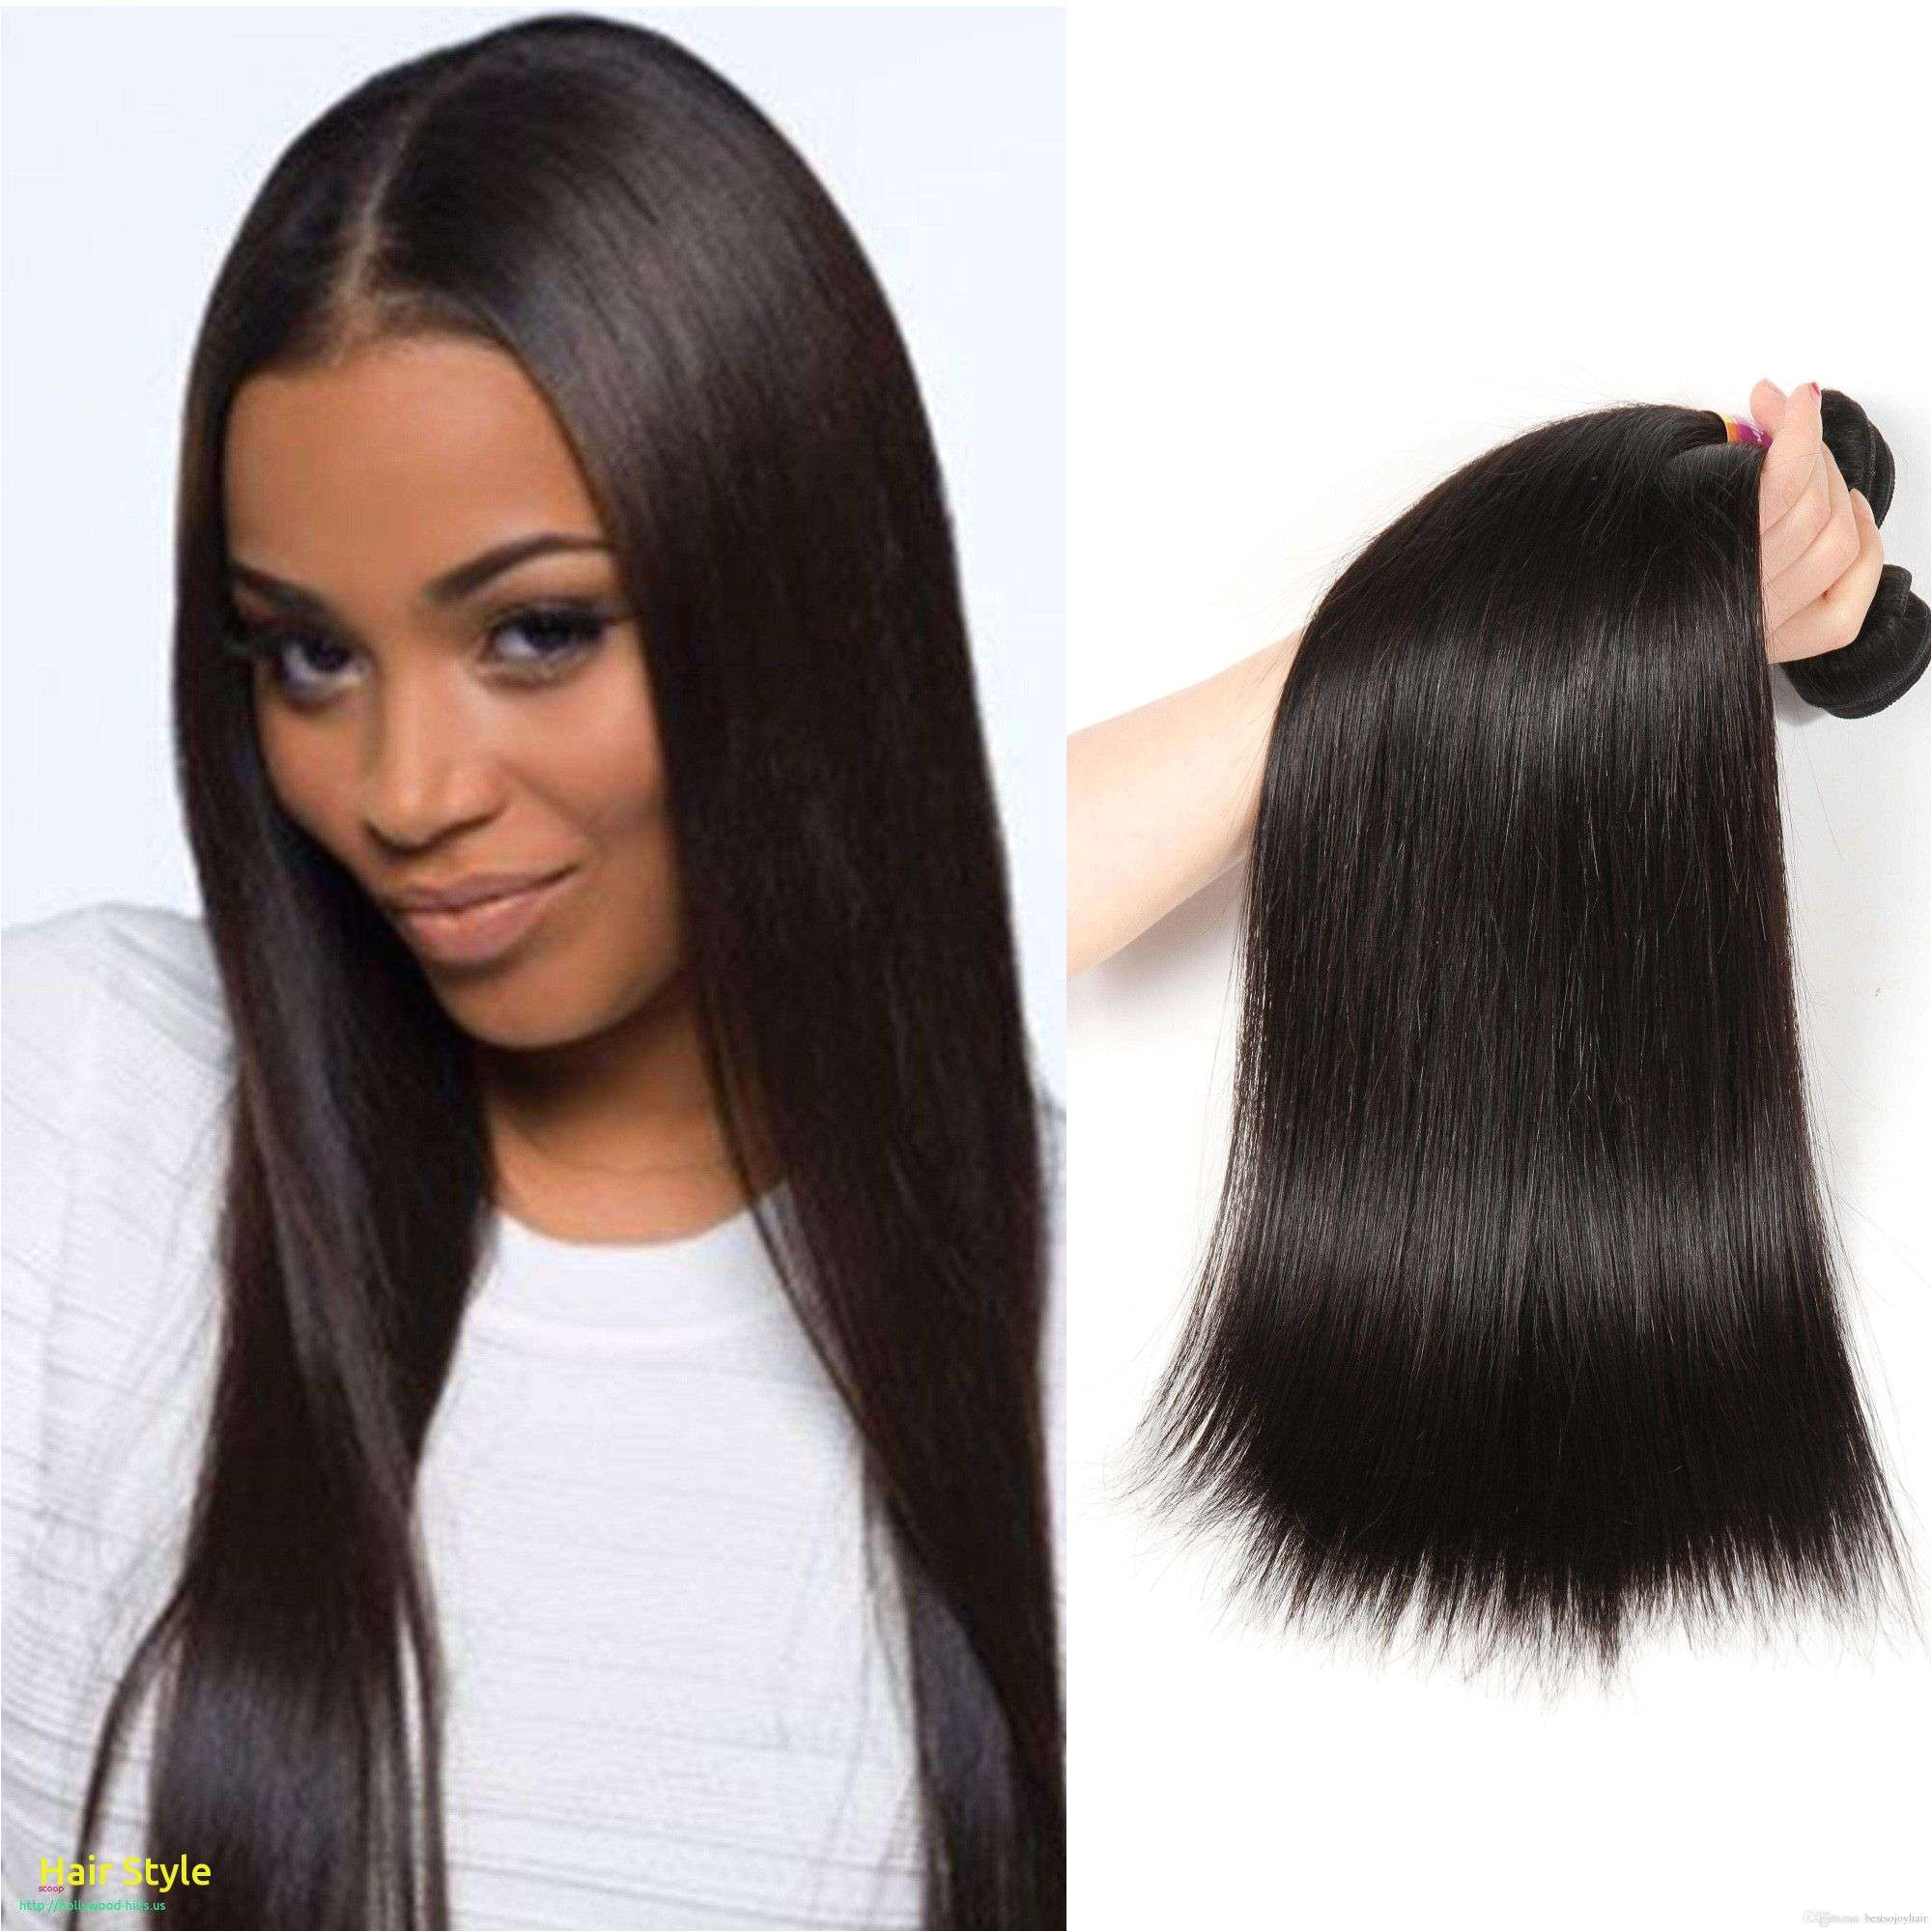 try out different hairstyles app unique hairstyles phone app fresh hairstyles app 0d at hollywood hills